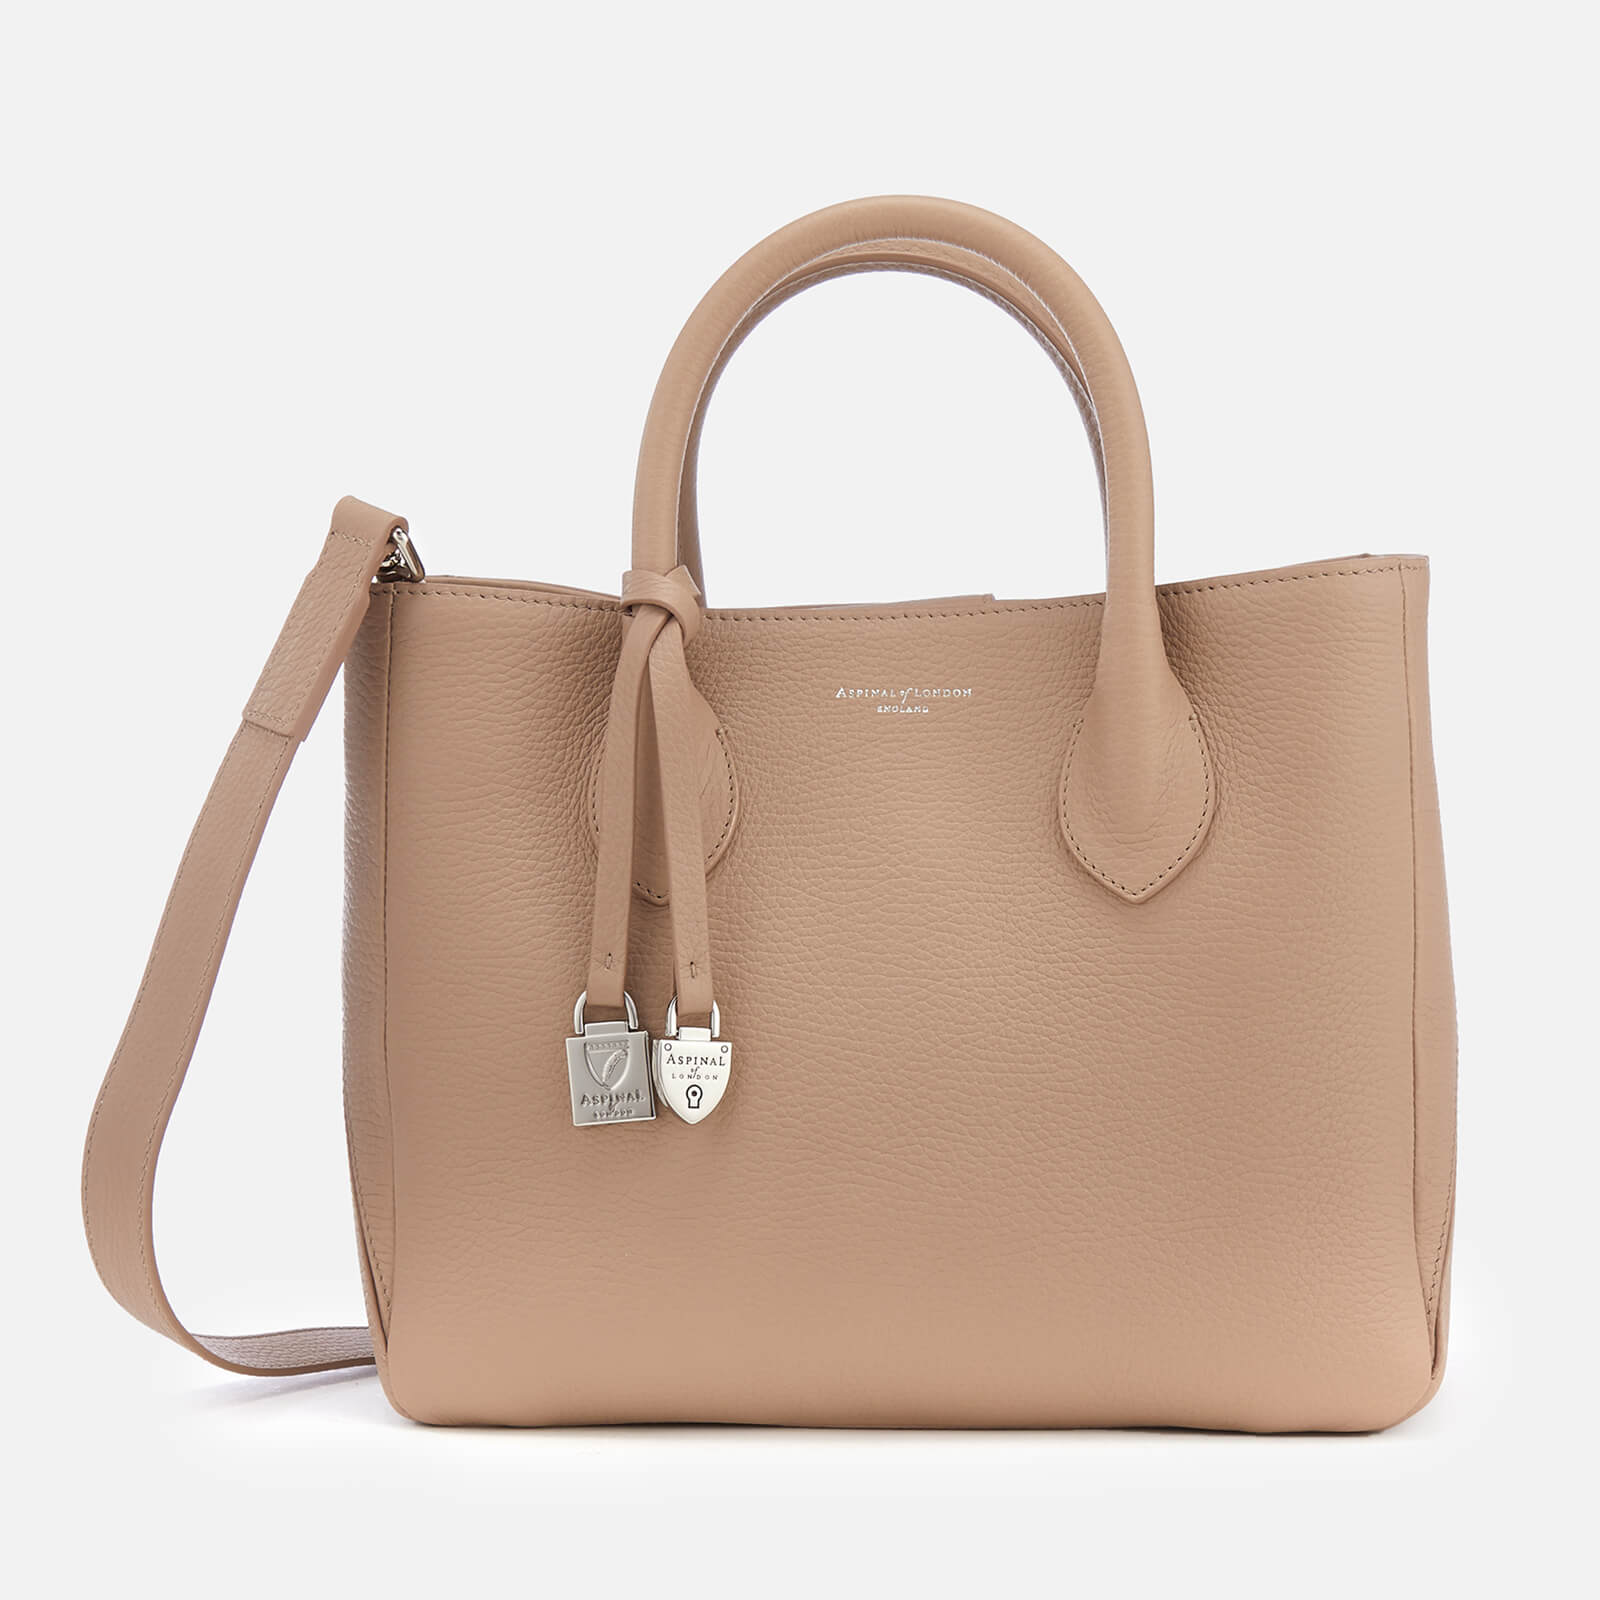 c3ac90f00bfb0 Aspinal of London Women s Small London Tote Bag - Soft Taupe - Free UK  Delivery over £50